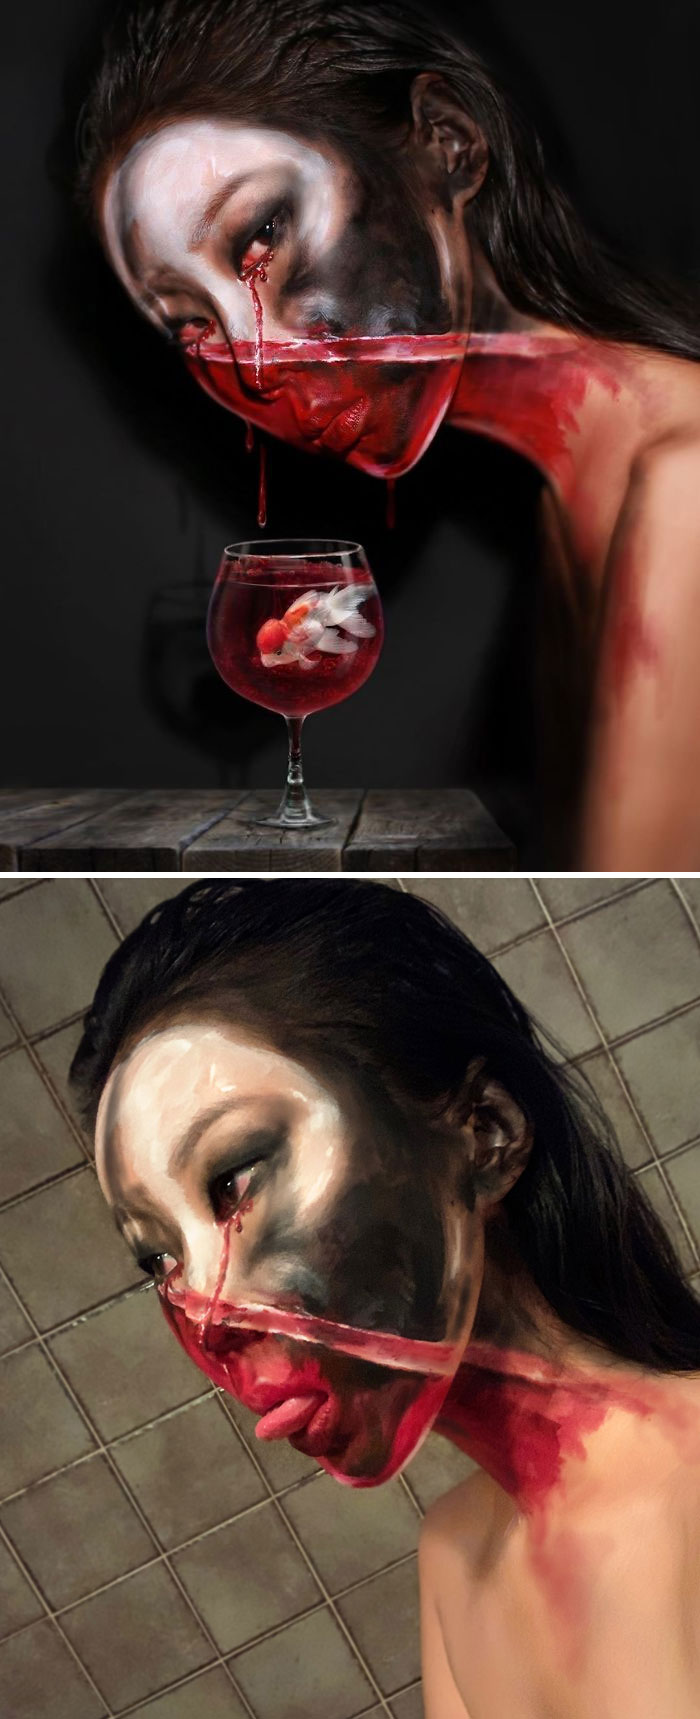 Optical Illusion Makeup Face with Dripping Blood